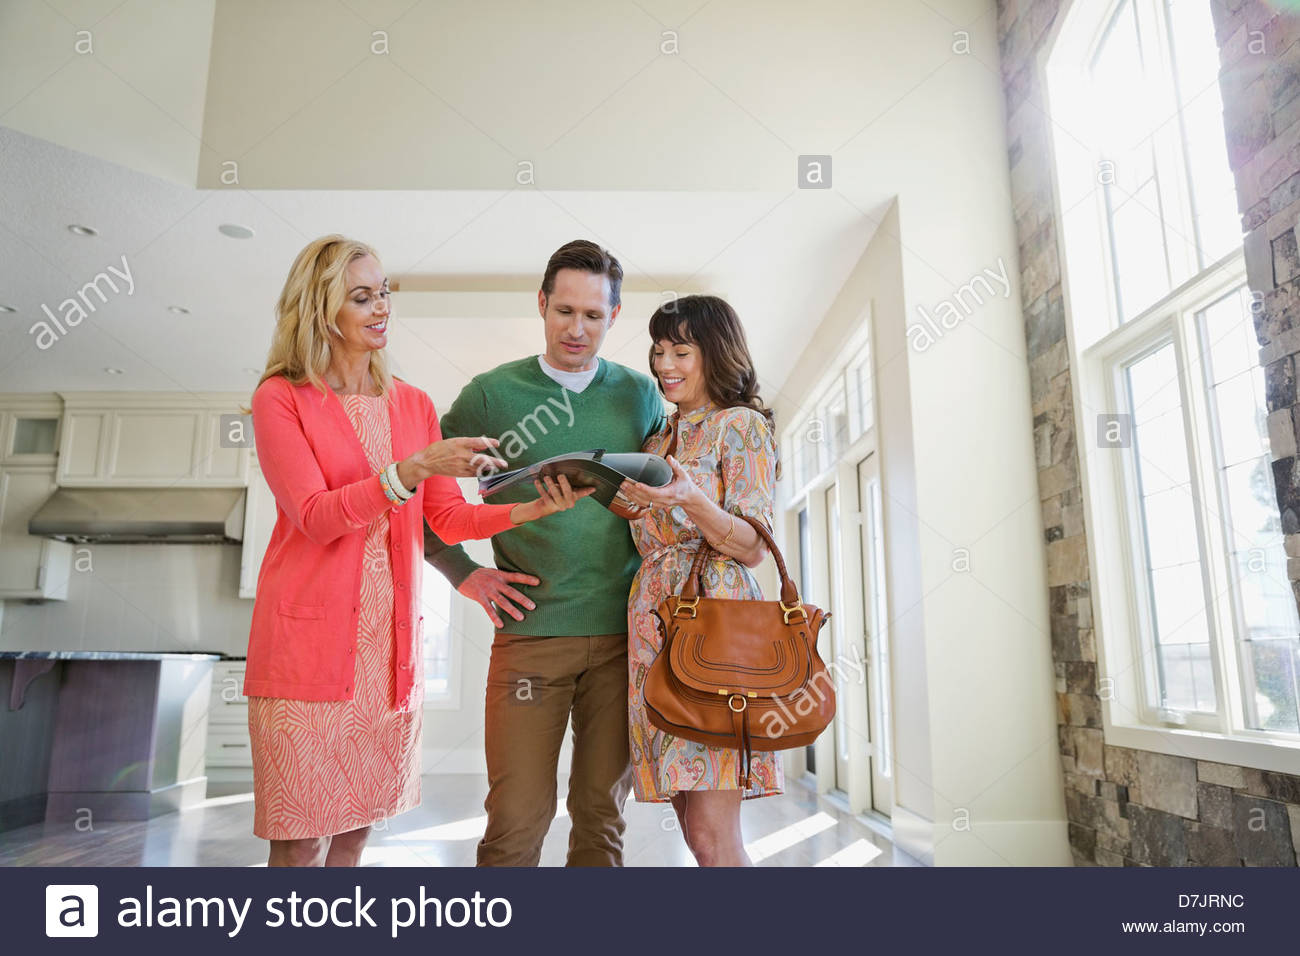 Female realtor showing brochure to couple in new home - Stock Image